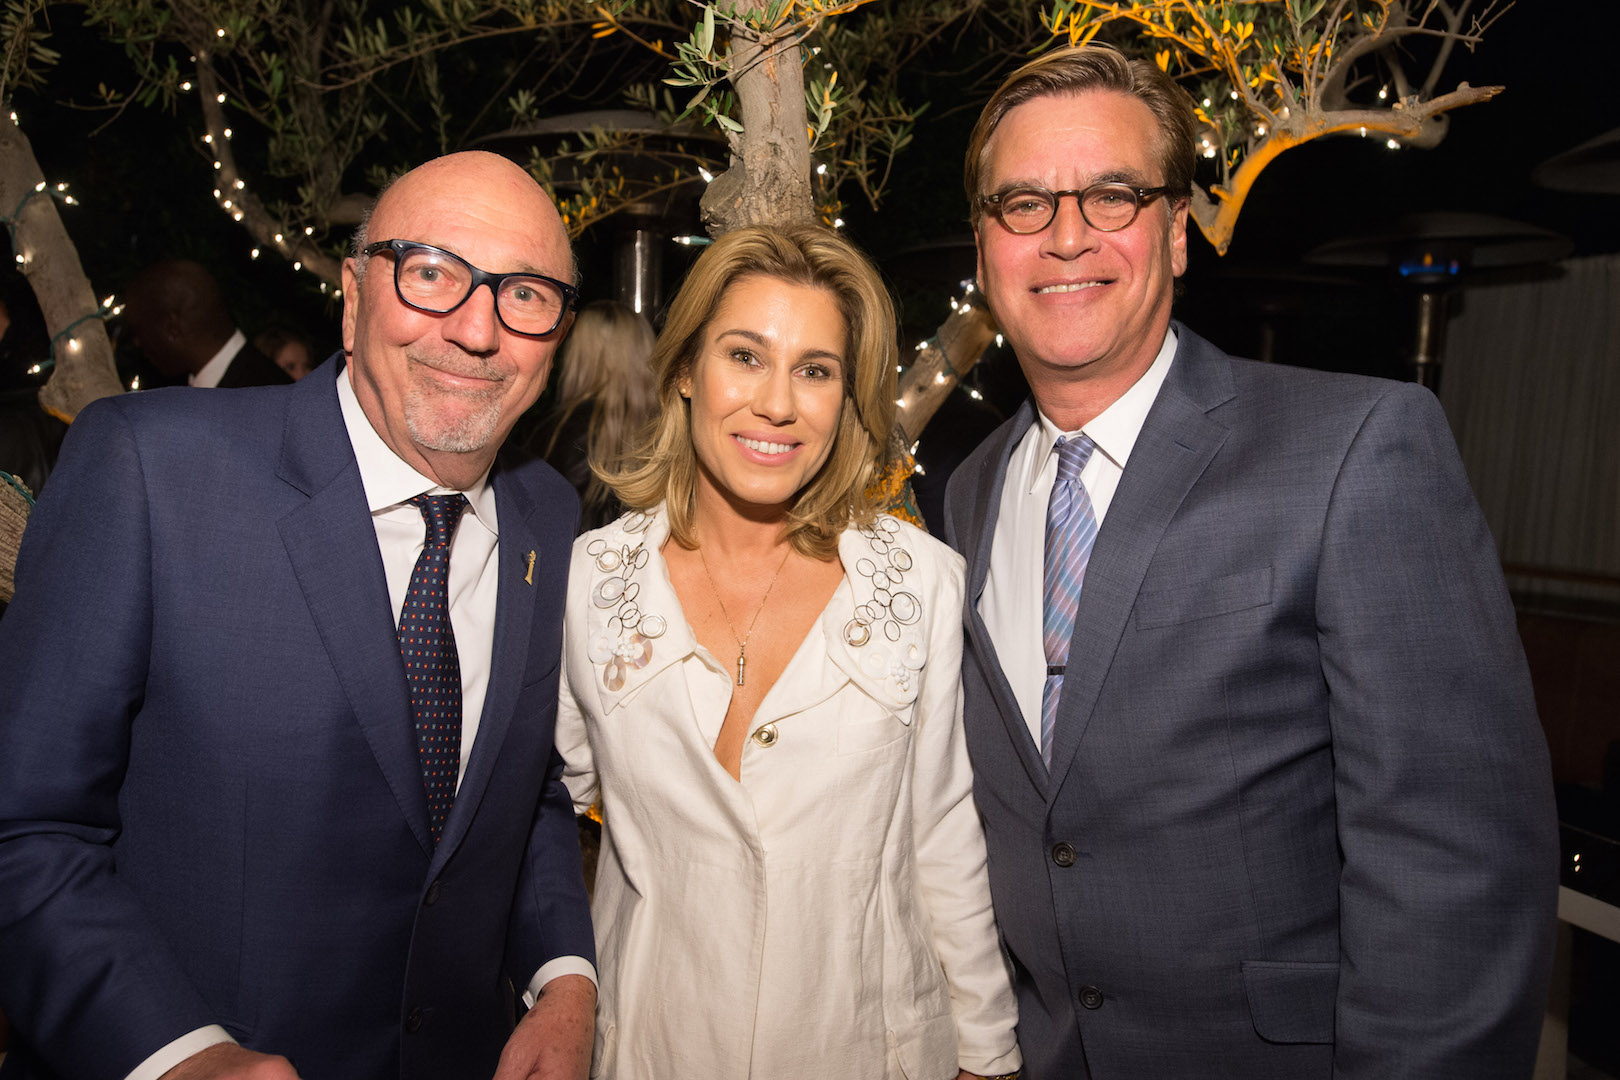 HFPA President Lorenzo Soria, Lilla Soria Pausits and Aaron Sorkin attend a party for the announcement of Corinne Foxx as Miss Golden Globe 2016 for the 73rd Annual Golden Globe Awards set to air live on NBC on January 10, 2016.  President Lorenzo Soria made the announcement on November 17, 2015 from Ysabel Restaurant in West Hollywood.